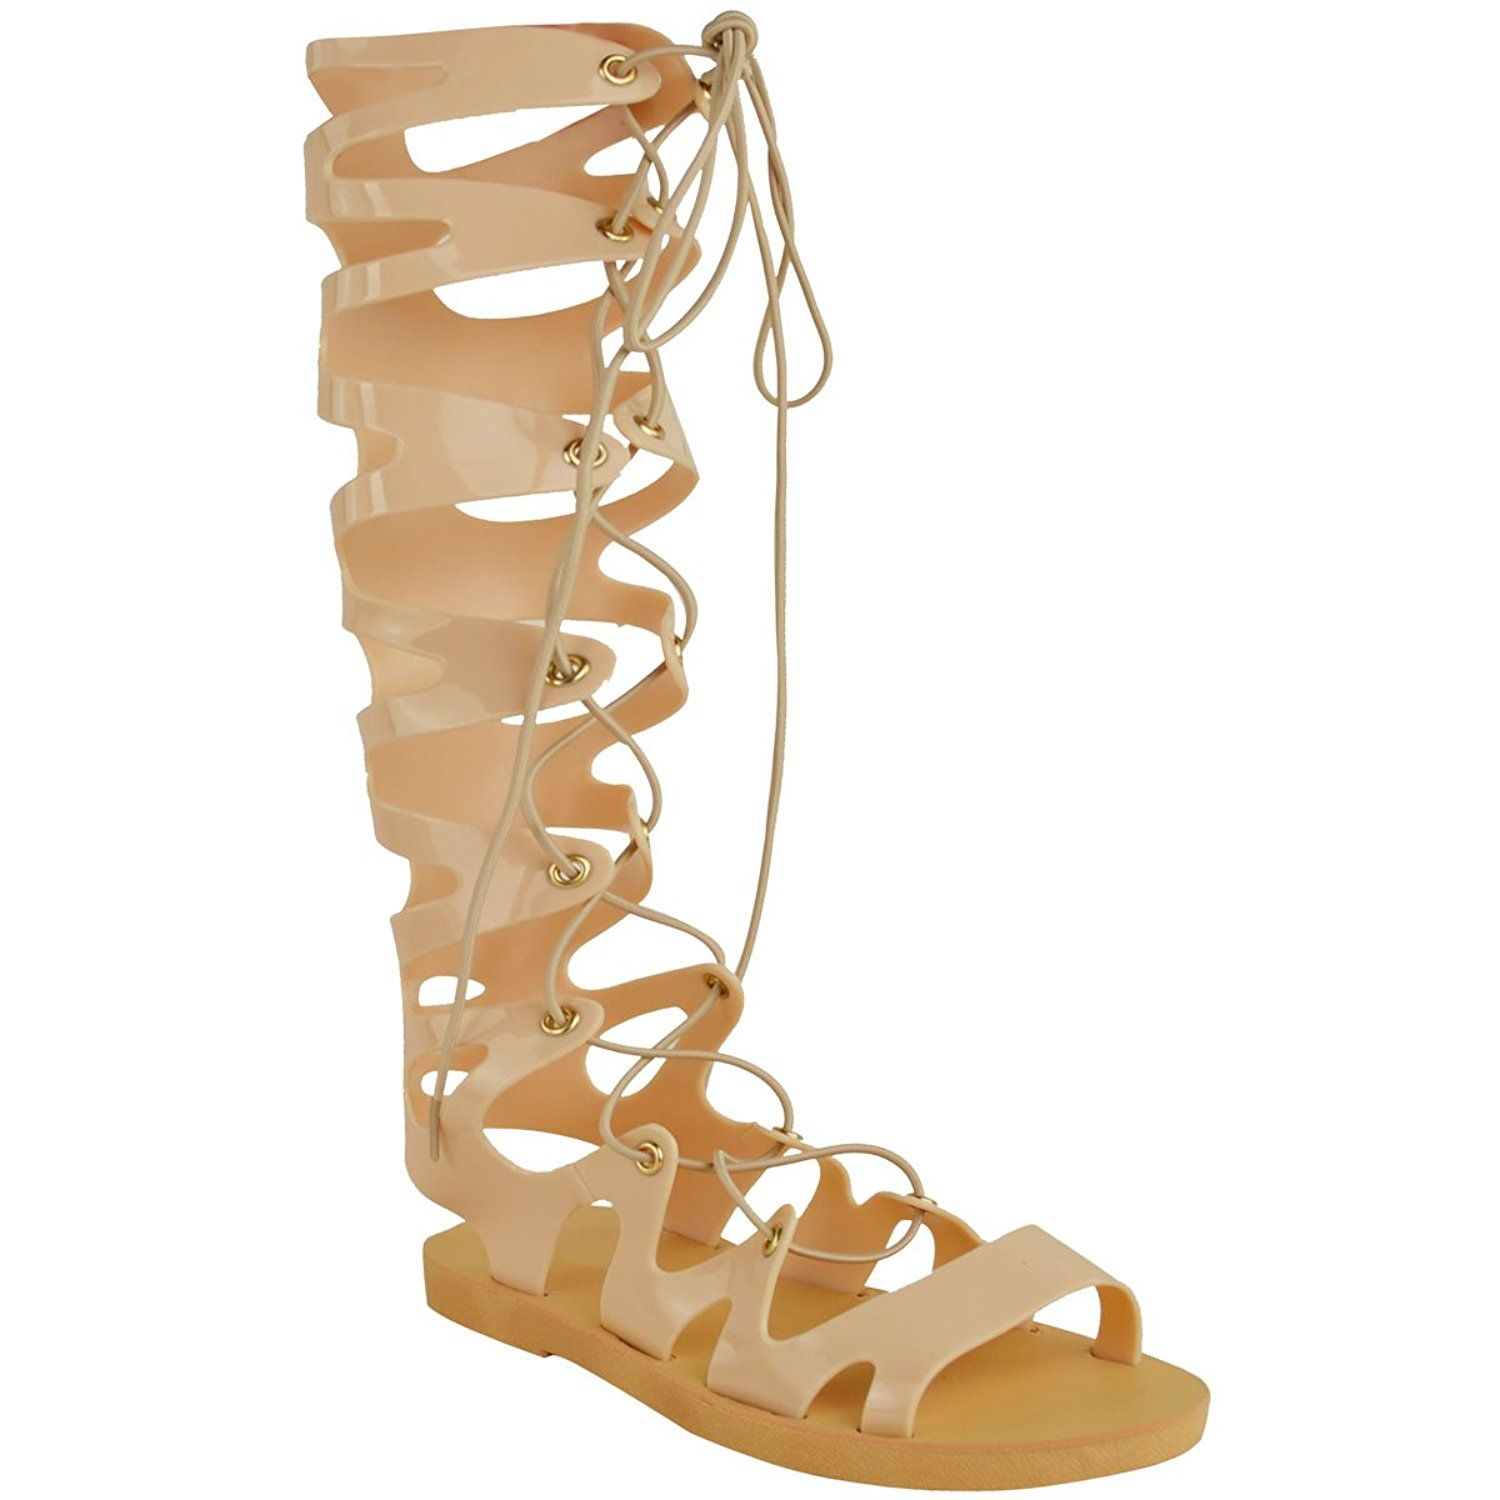 341c5fd97acb Fashion thirsty womens knee high lace up jelly sandals gladiator flat  summer shoes sandals size jpg